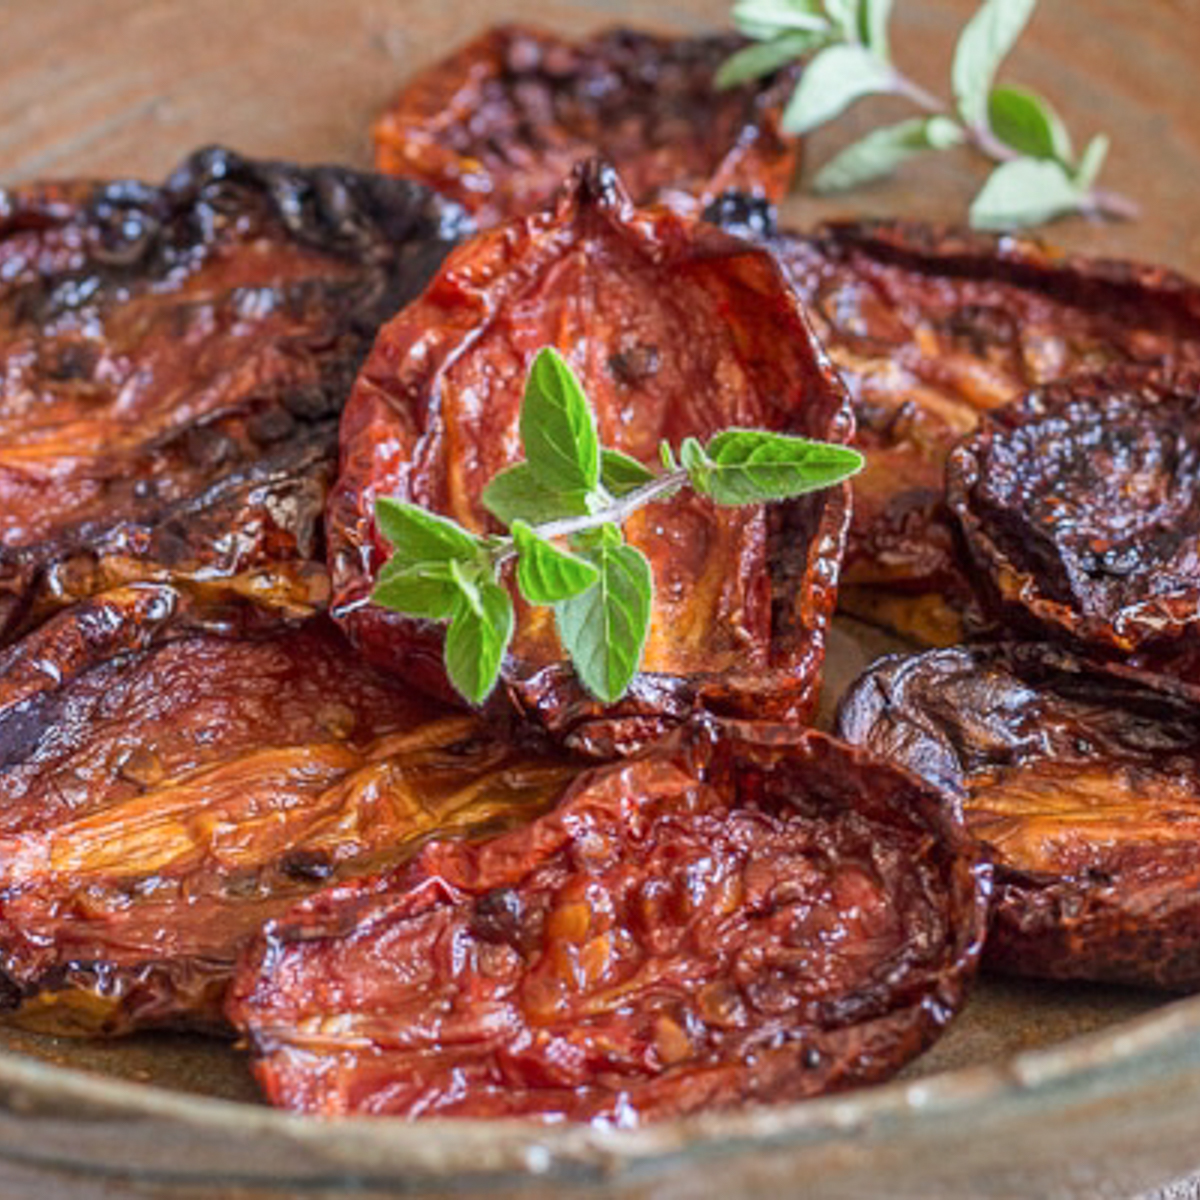 Sun- dried tomatoes in a brown plate.